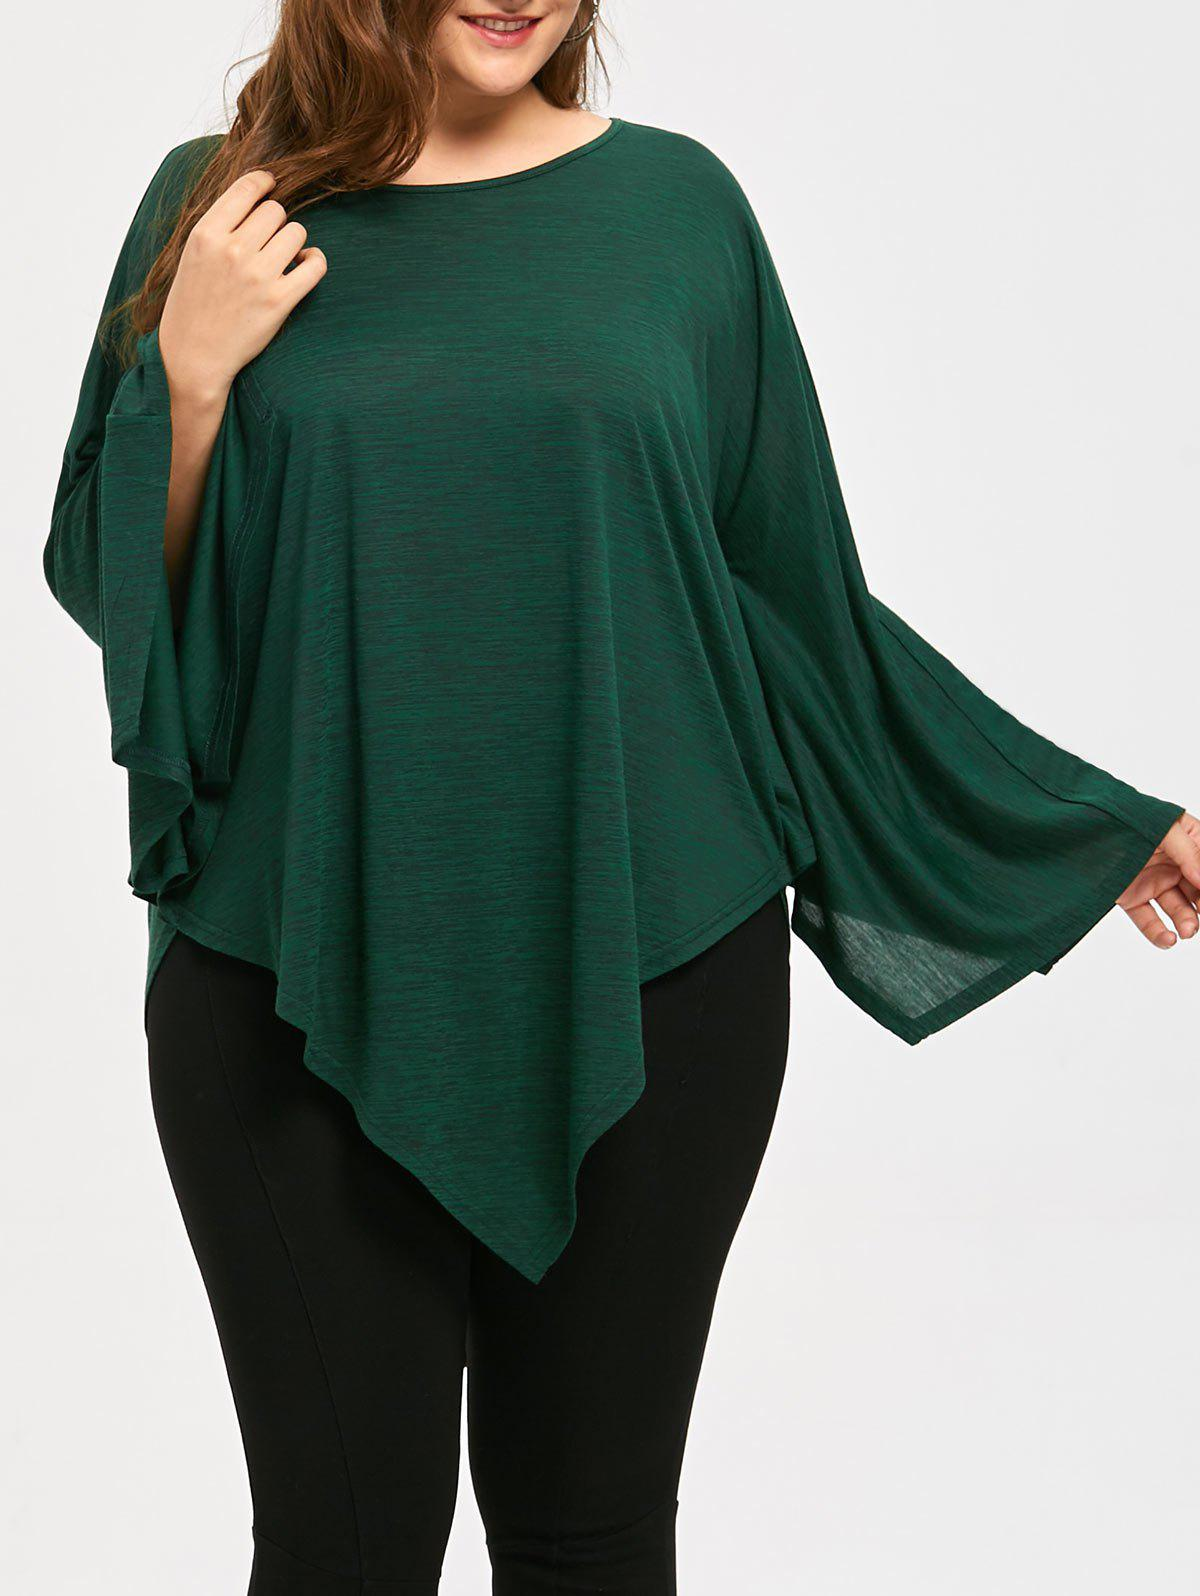 Asymmetric Plus Size Long Cape TopWOMEN<br><br>Size: XL; Color: HUNTER; Material: Cotton Blends,Spandex; Shirt Length: Long; Sleeve Length: Full; Collar: Round Neck; Style: Fashion; Season: Fall,Spring; Pattern Type: Solid; Weight: 0.3120kg; Package Contents: 1 x Top;